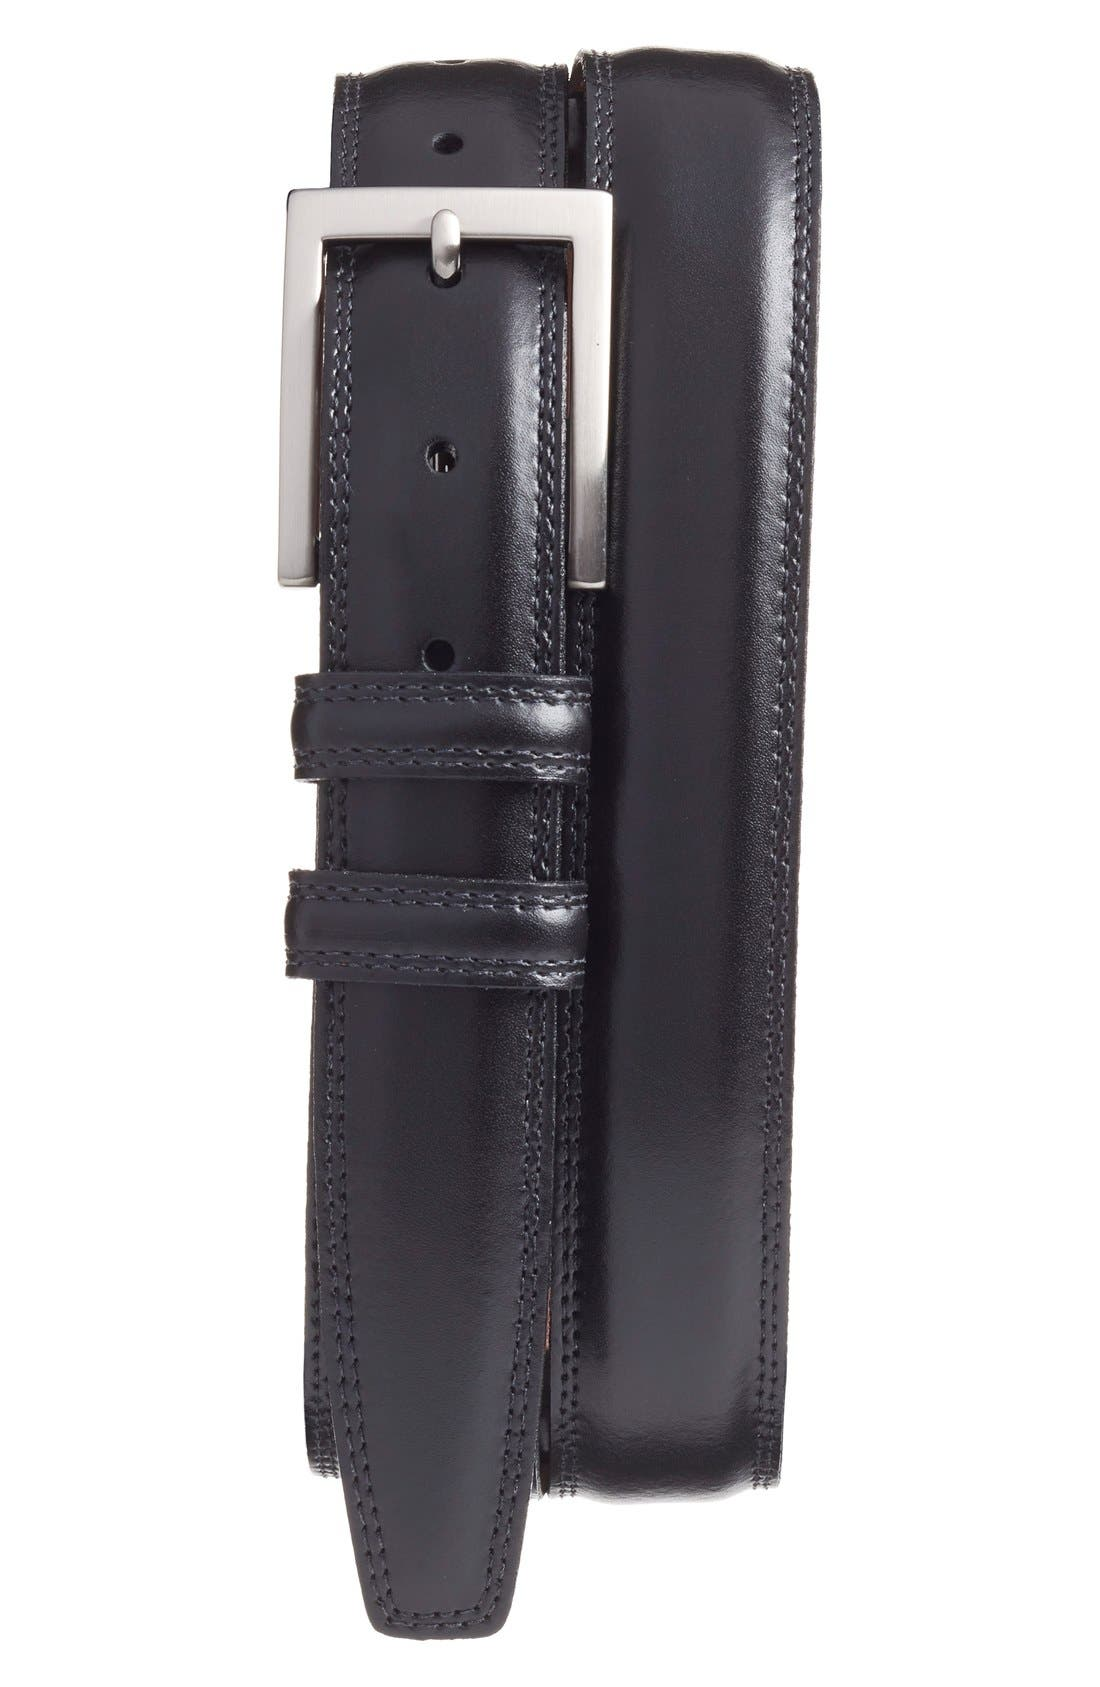 Alternate Image 1 Selected - Torino Belts Aniline Leather Belt